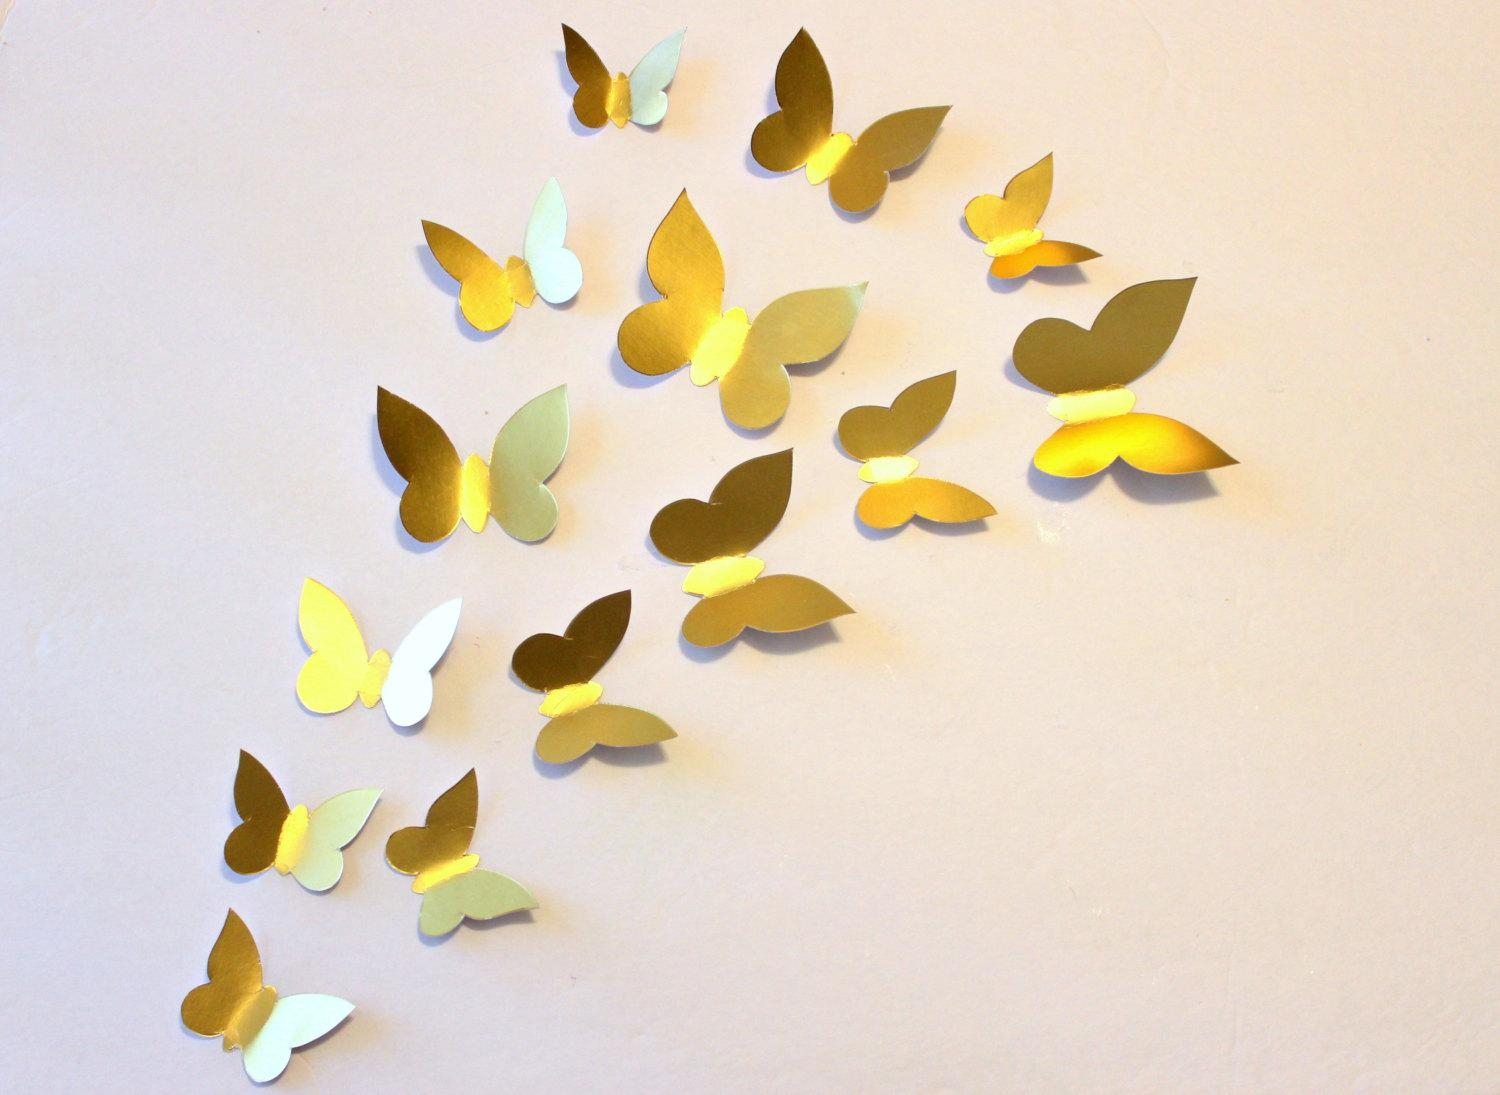 Decor : 5 Butterfly Wall Decor Patterns Gold Butterfly Gold Wall With Gold Wall Art Stickers (Image 9 of 20)